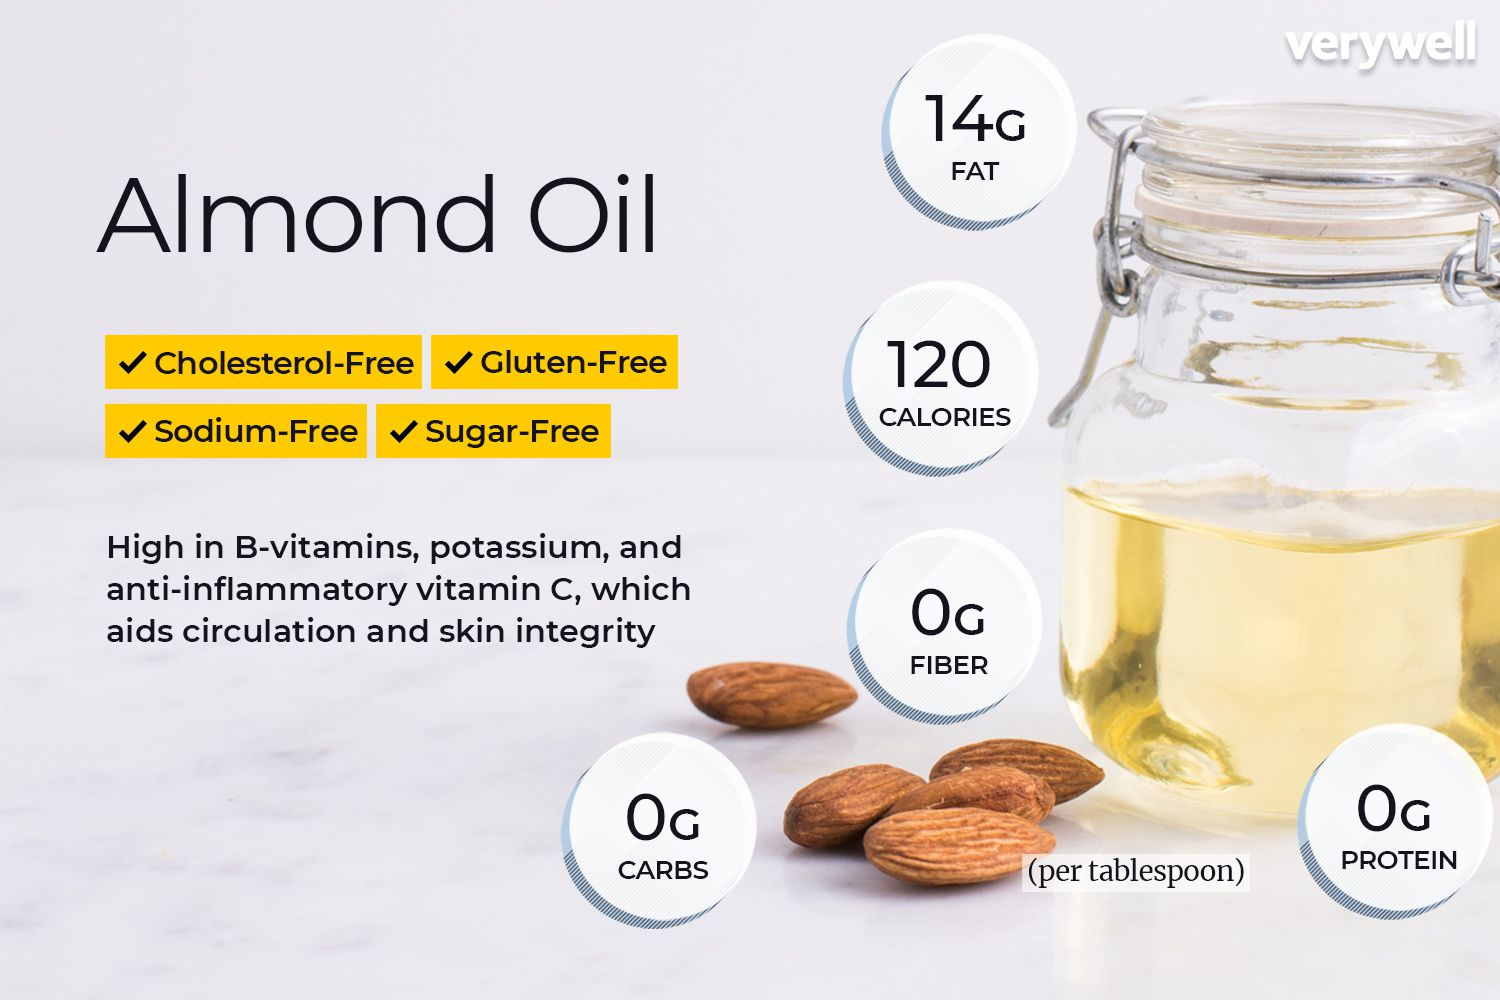 Almond Oil Nutrition Facts: Calories, Carbs, and Health Benefits